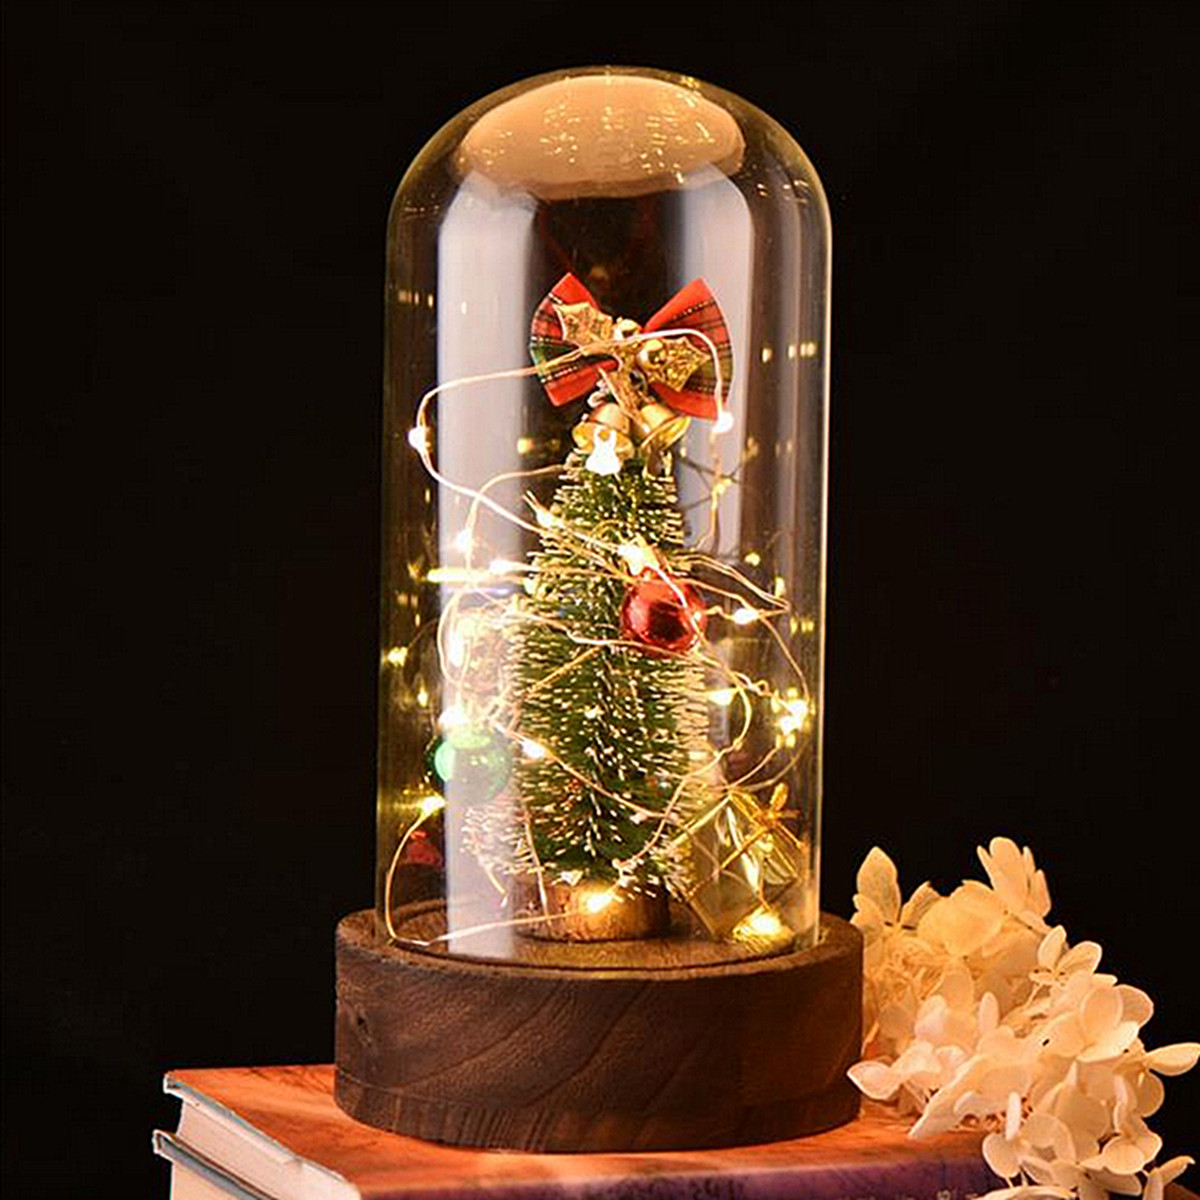 цена на New Christmas Tree Jingle Bell Ornaments Gift Glass Dome Bell Jar + Fairy LED Lights Wooden Base + Music Box Song For Home Decor